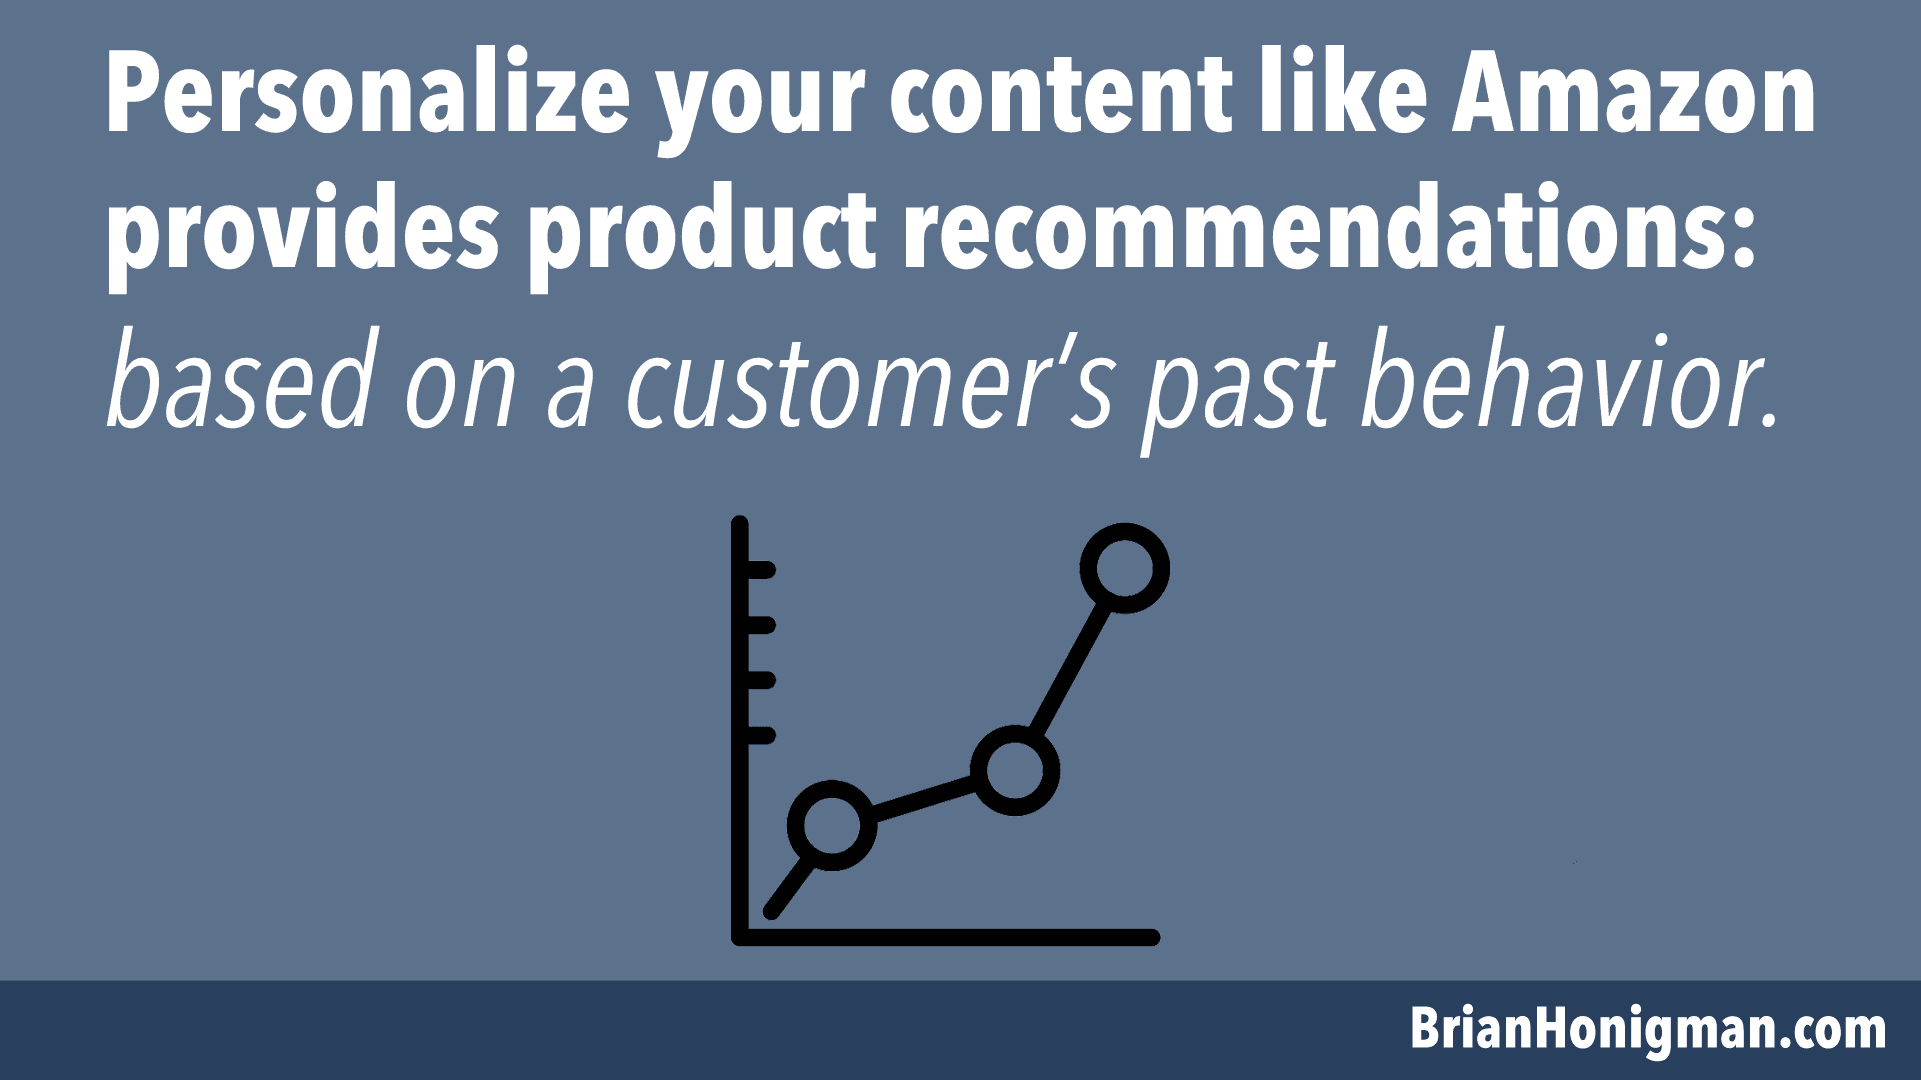 personalize-content-based-on-past-behavior